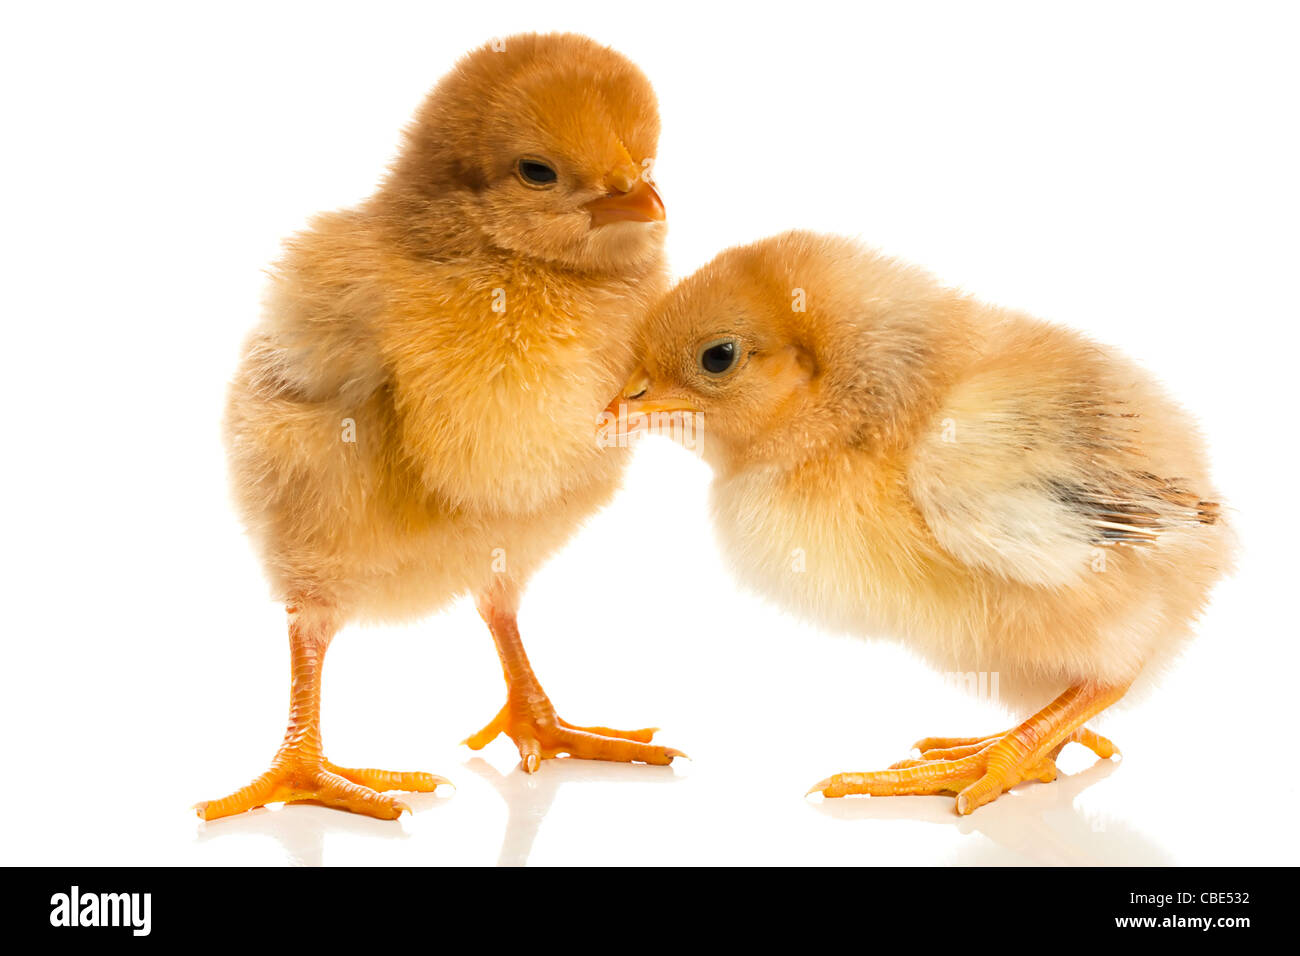 Image result for cute images of baby chicks